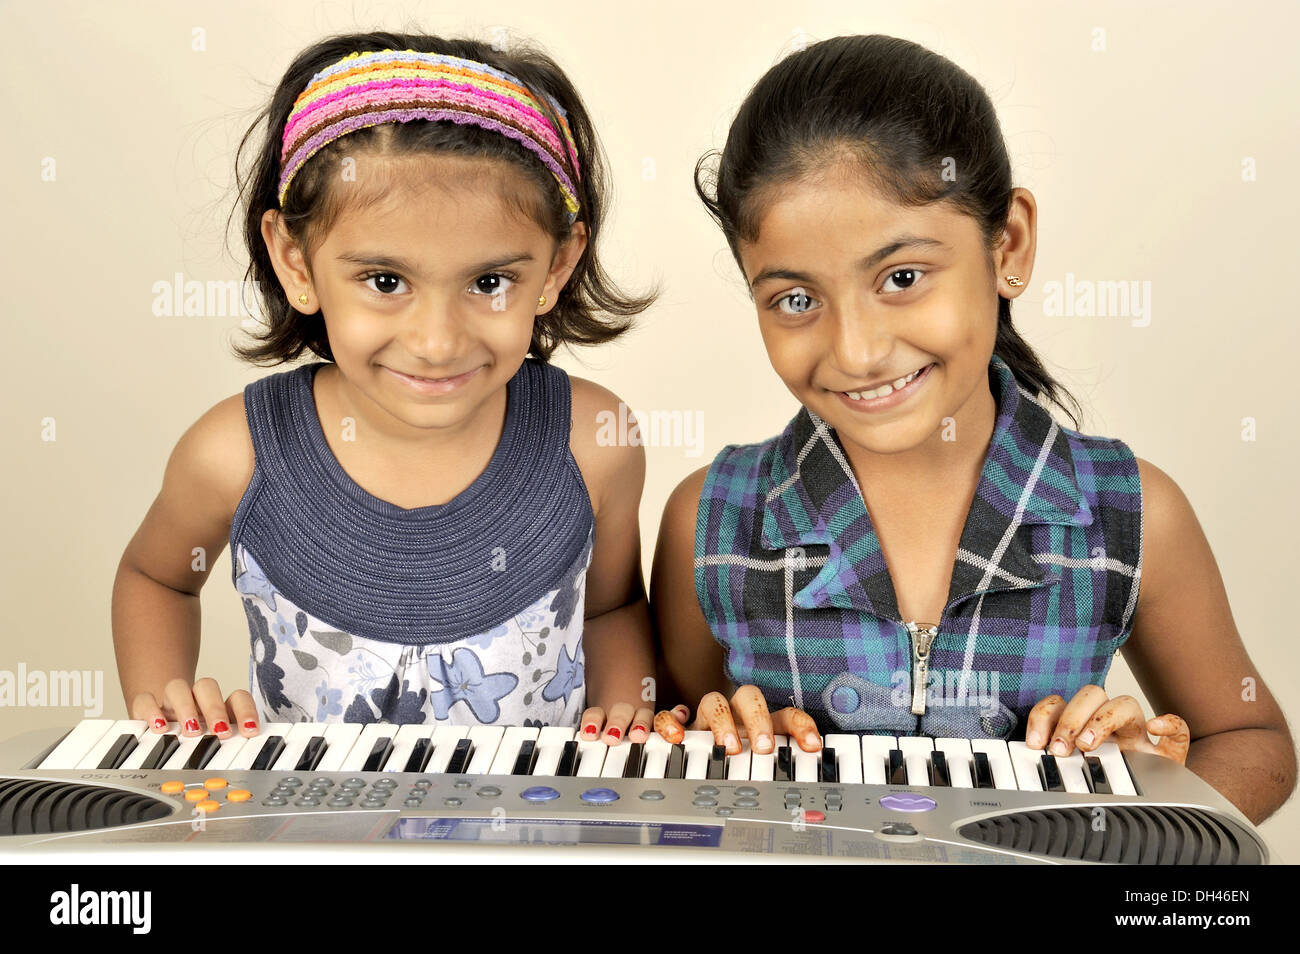 Two sisters friends girls playing piano MR#736L&682W - Stock Image